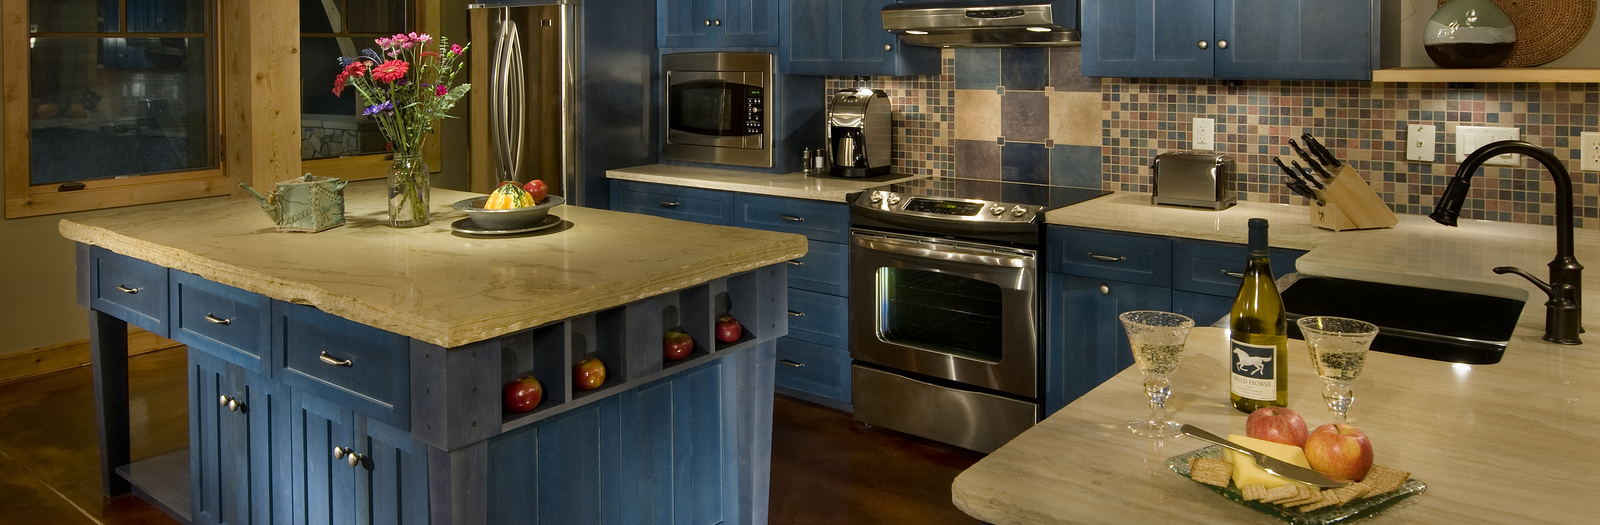 Transitional Kitchen with stainless steel appliances